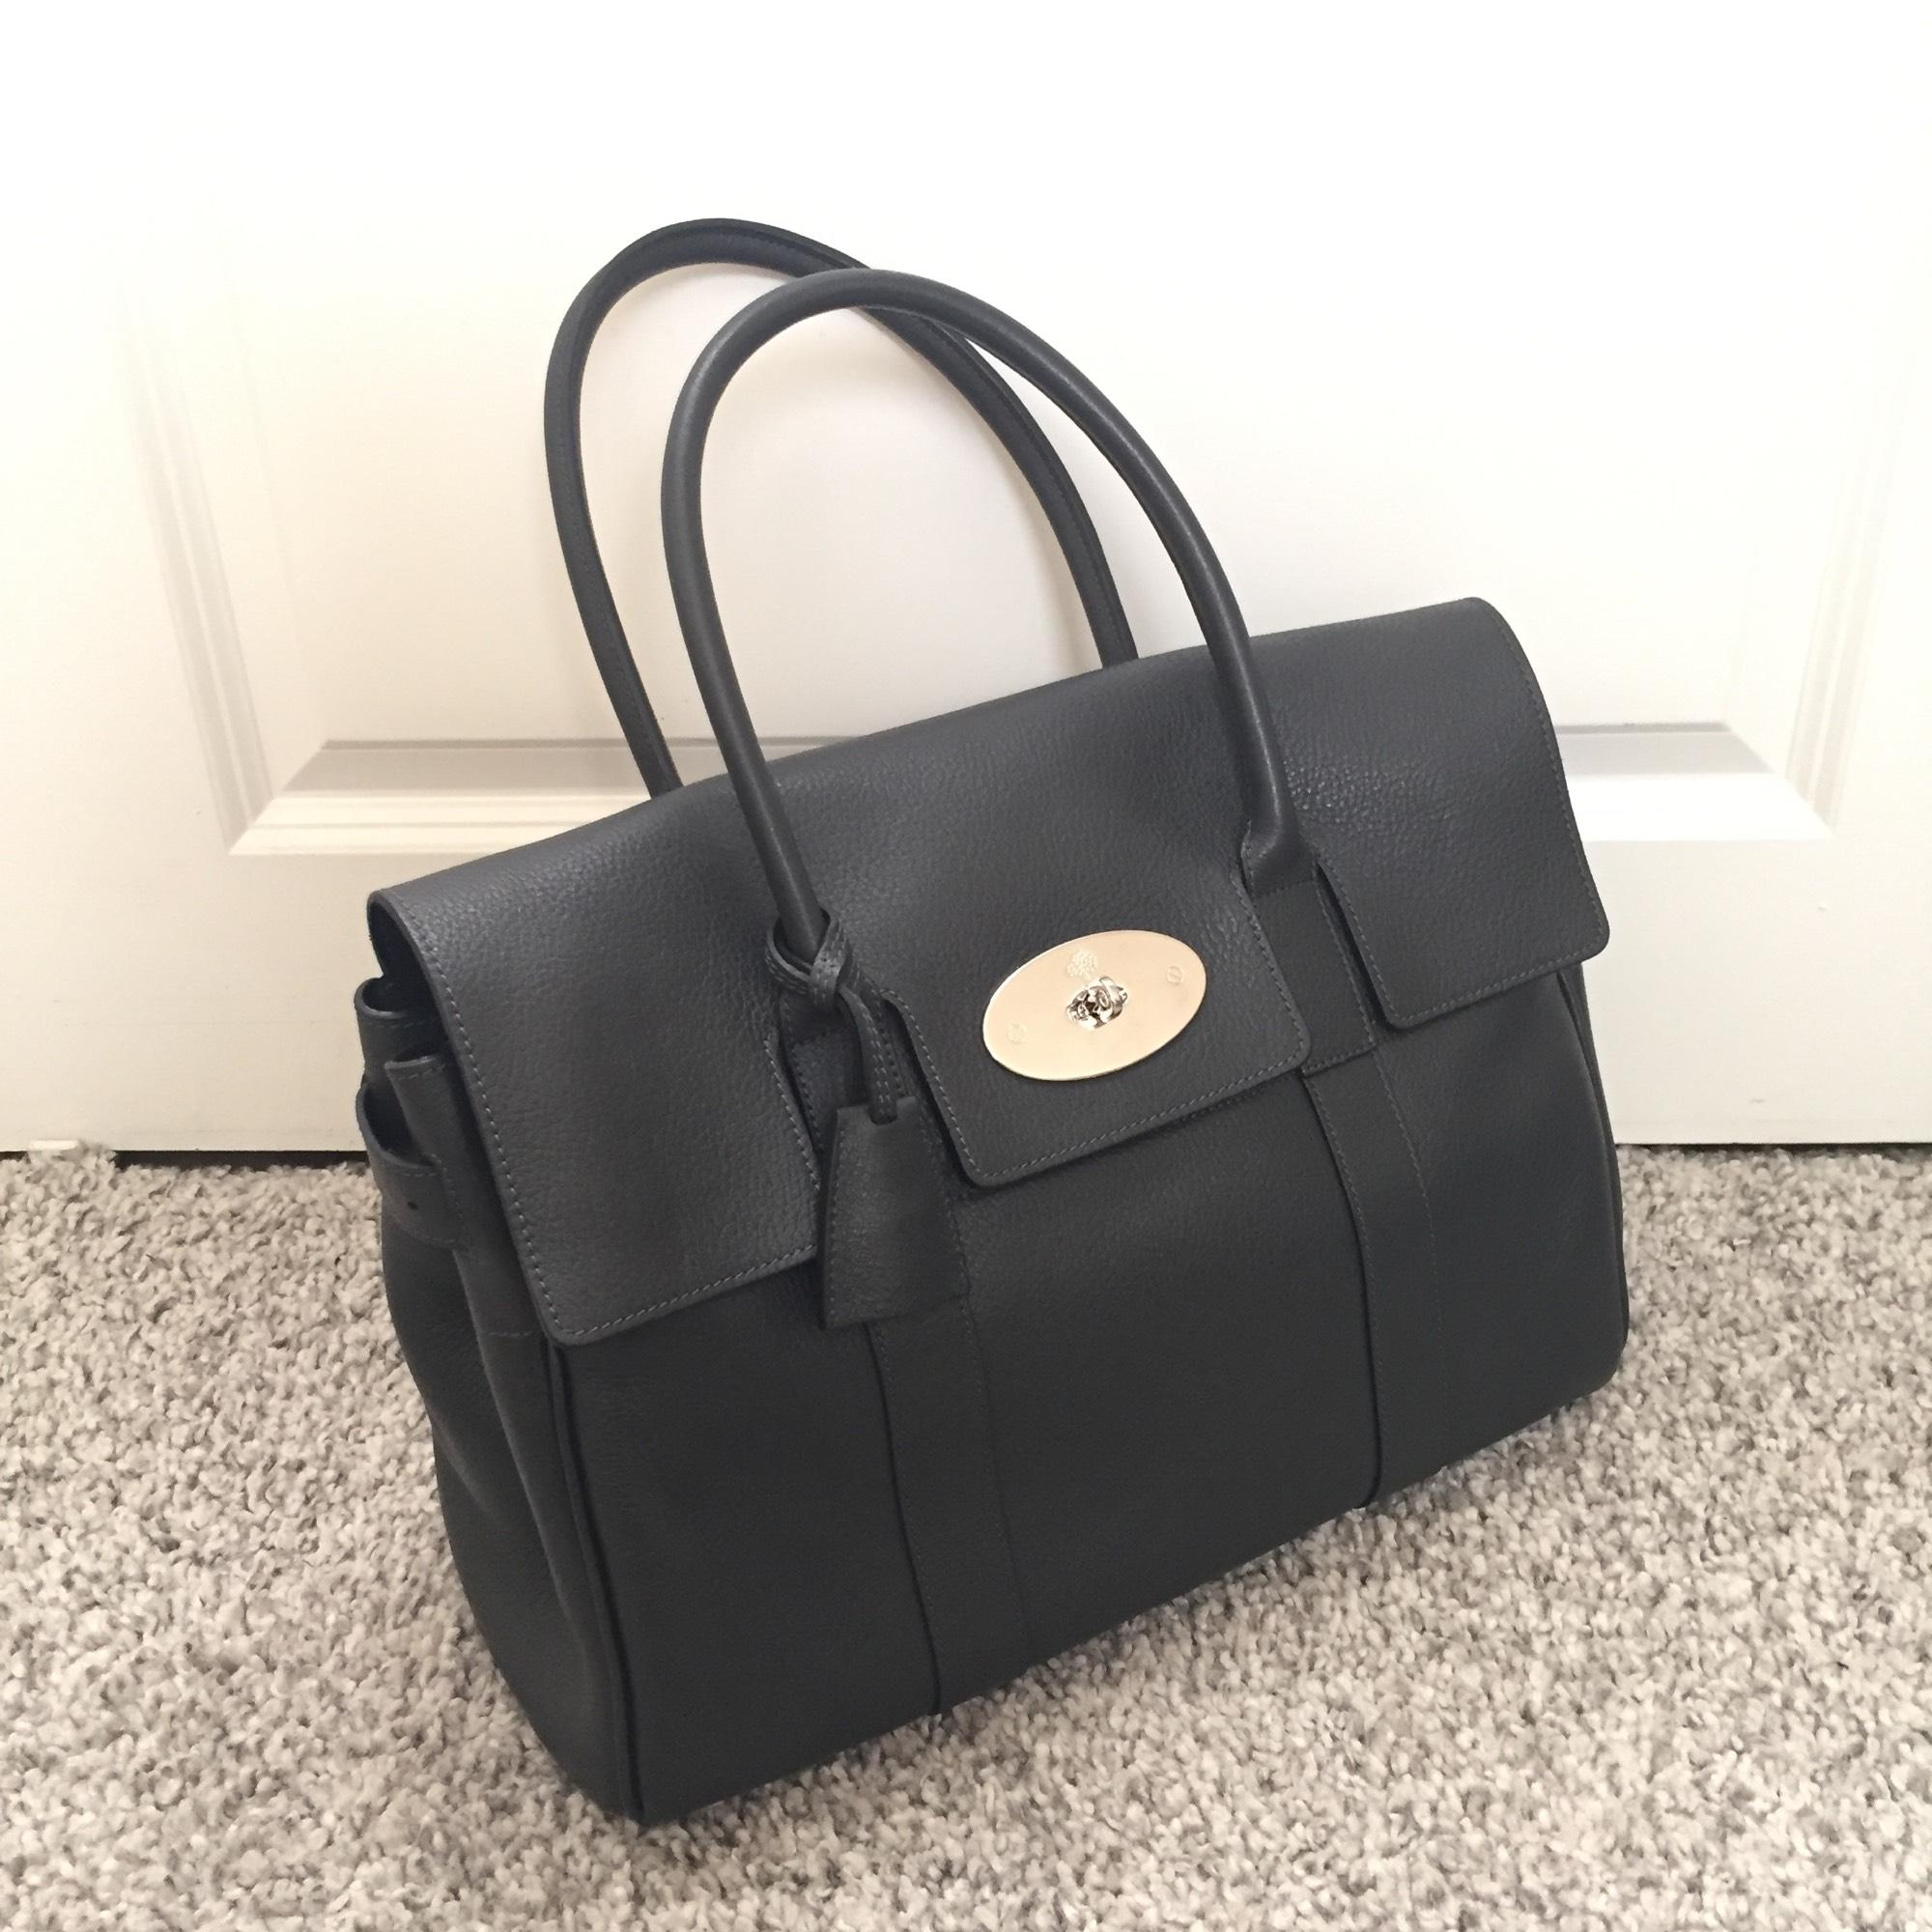 ... clearance mulberry bayswater graphite grey pebbled leather satchel  tradesy 8101c 2d05f 0d1294568b5c9